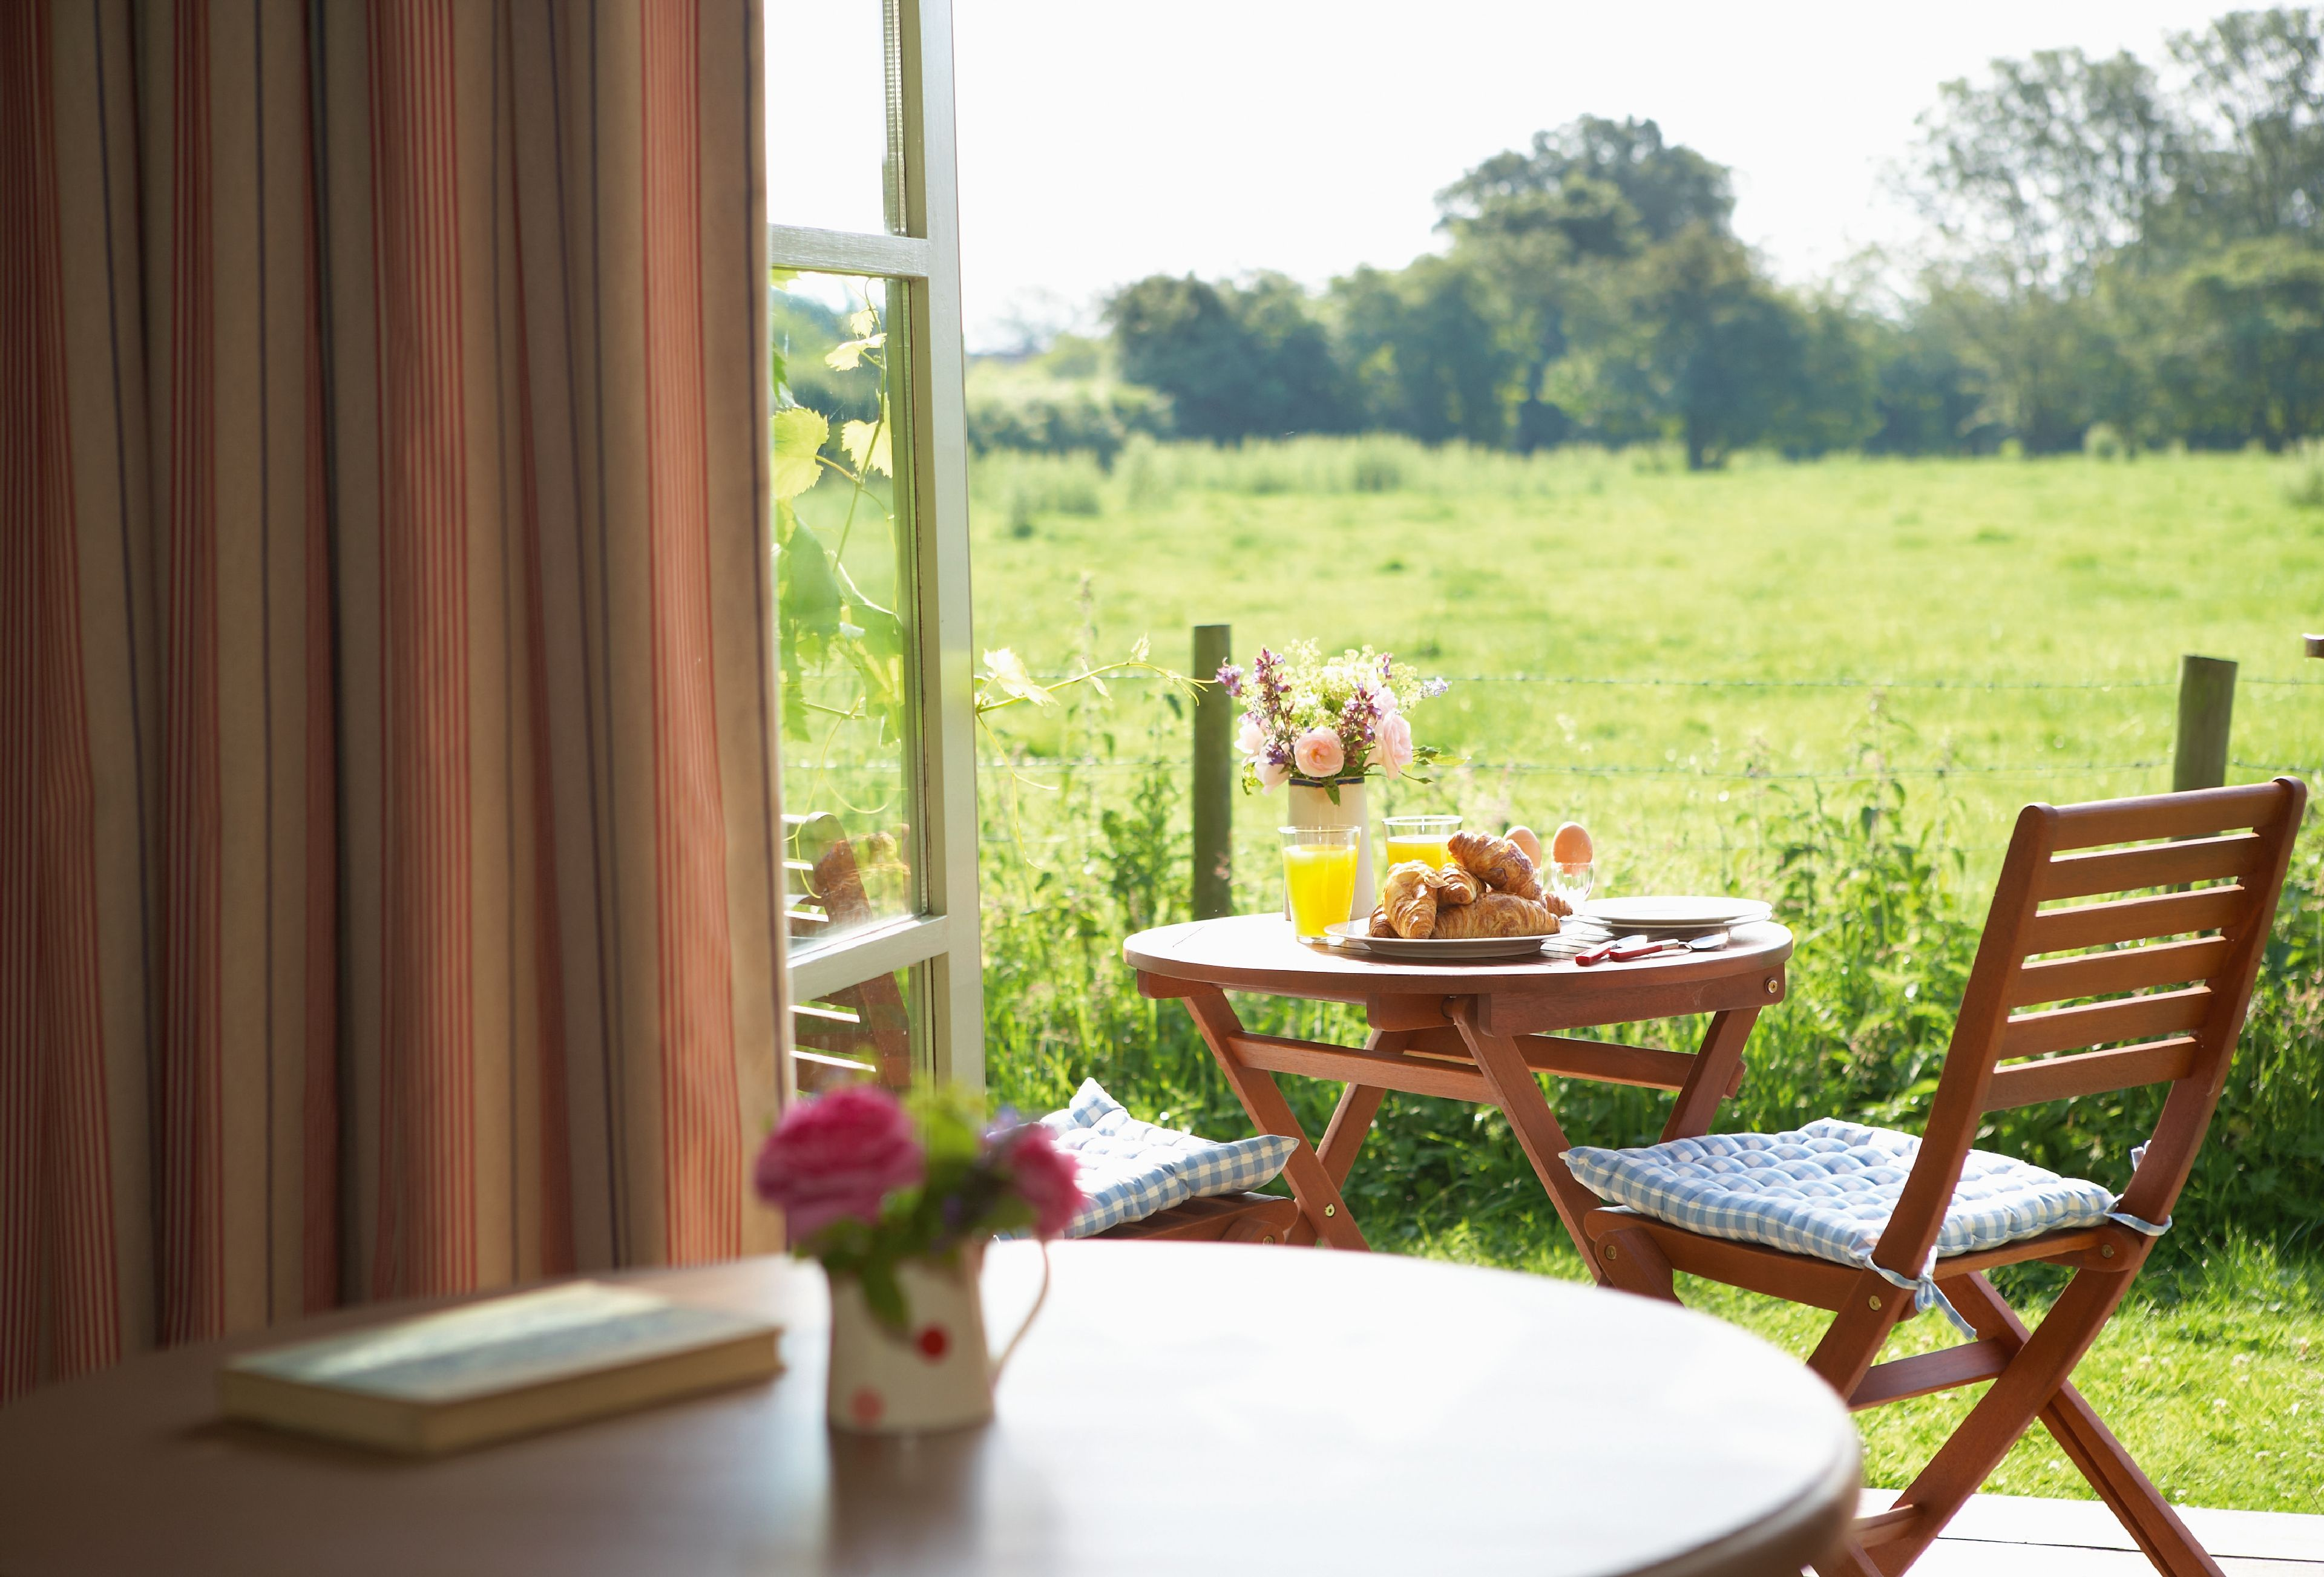 Acorn Cottage - Holiday cottages and homes in Norfolk - Rural Retreats